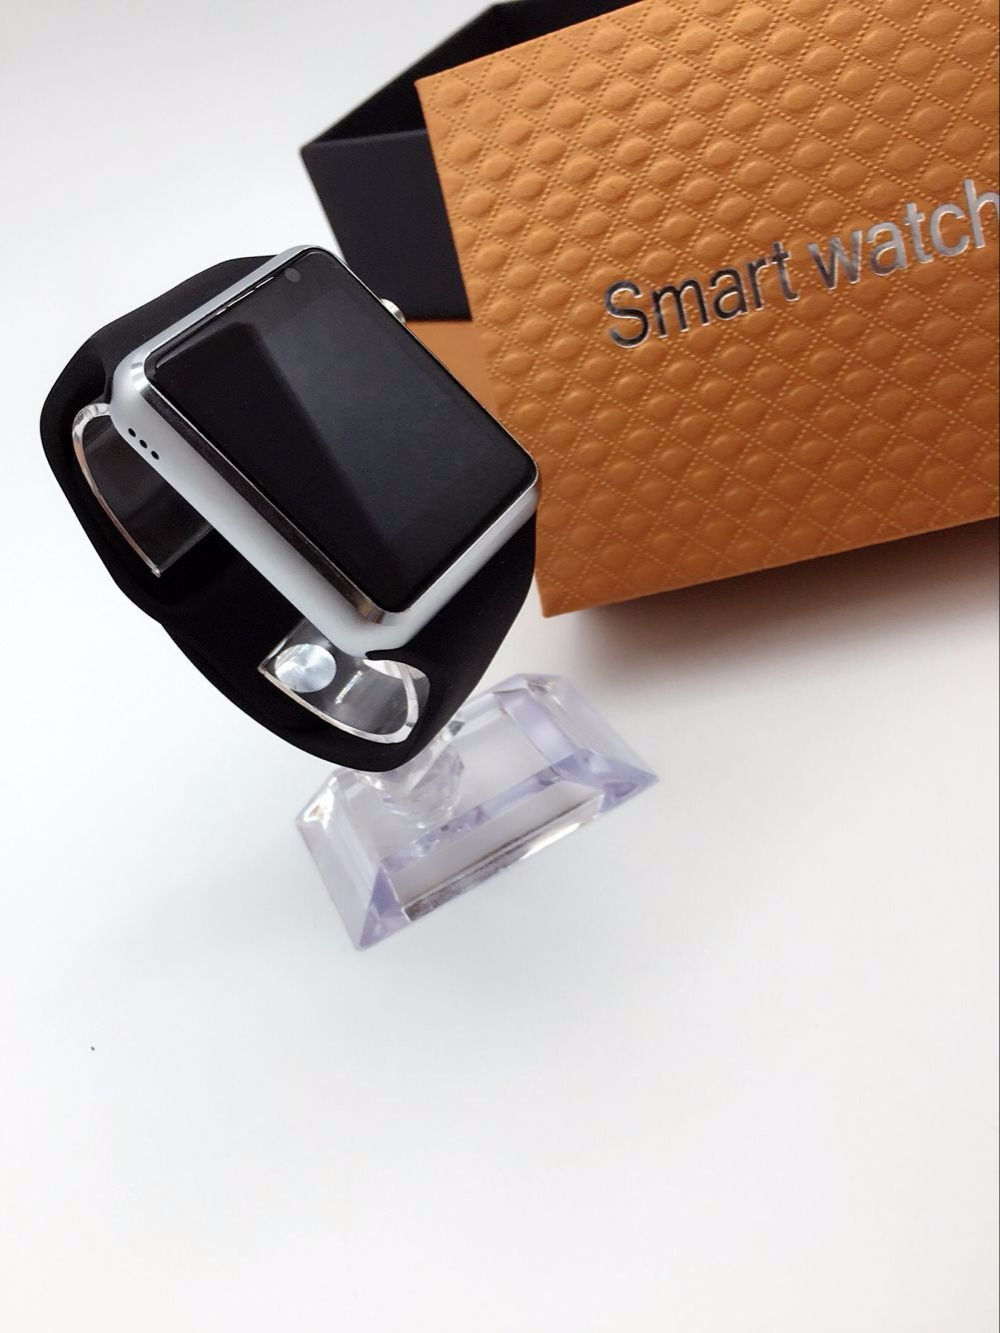 X8 adults smart watch 3G Smart Watch Android MP Camera GPS WiFi Bluetooth watch